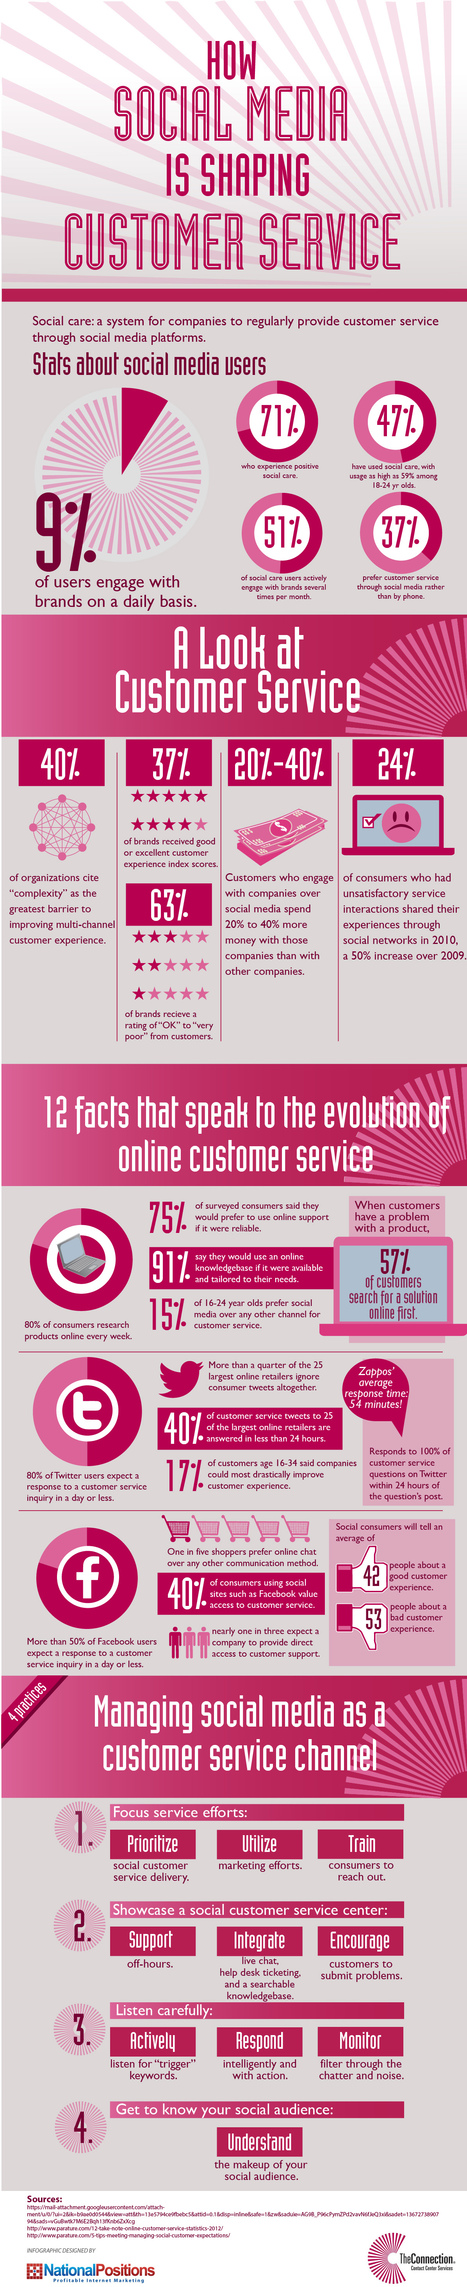 How Social Media Is Shaping Customer Service [Infographic] | Business for small businesses | Scoop.it